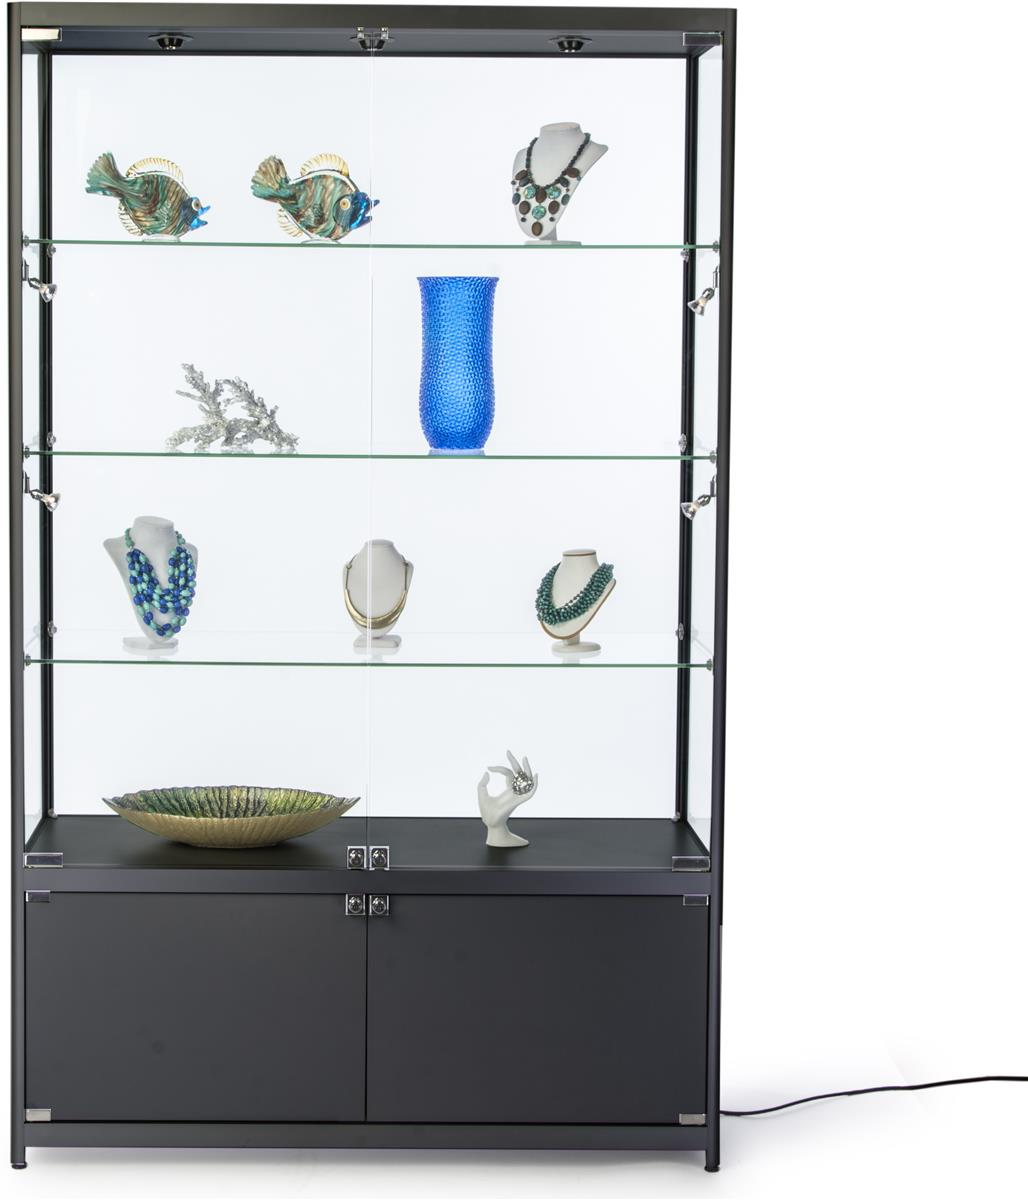 4 Wide Illuminated Display Case 3 Glass Shelves